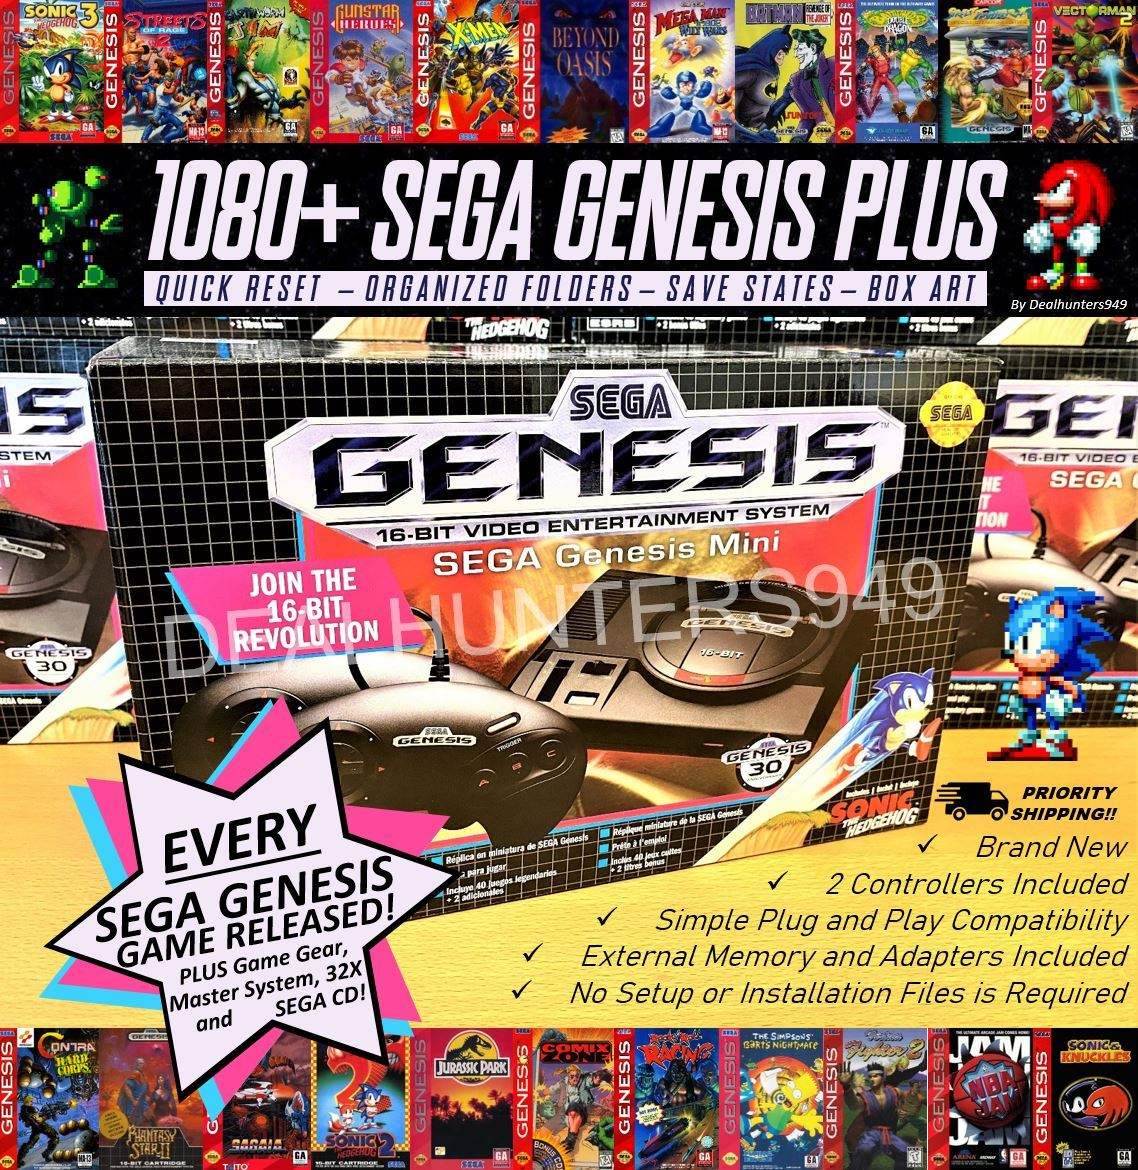 Primary image for SEGA GENESIS 1080+ (Entire Sega Library) Classic Mini w/ Game Gear, 32x, Sega CD